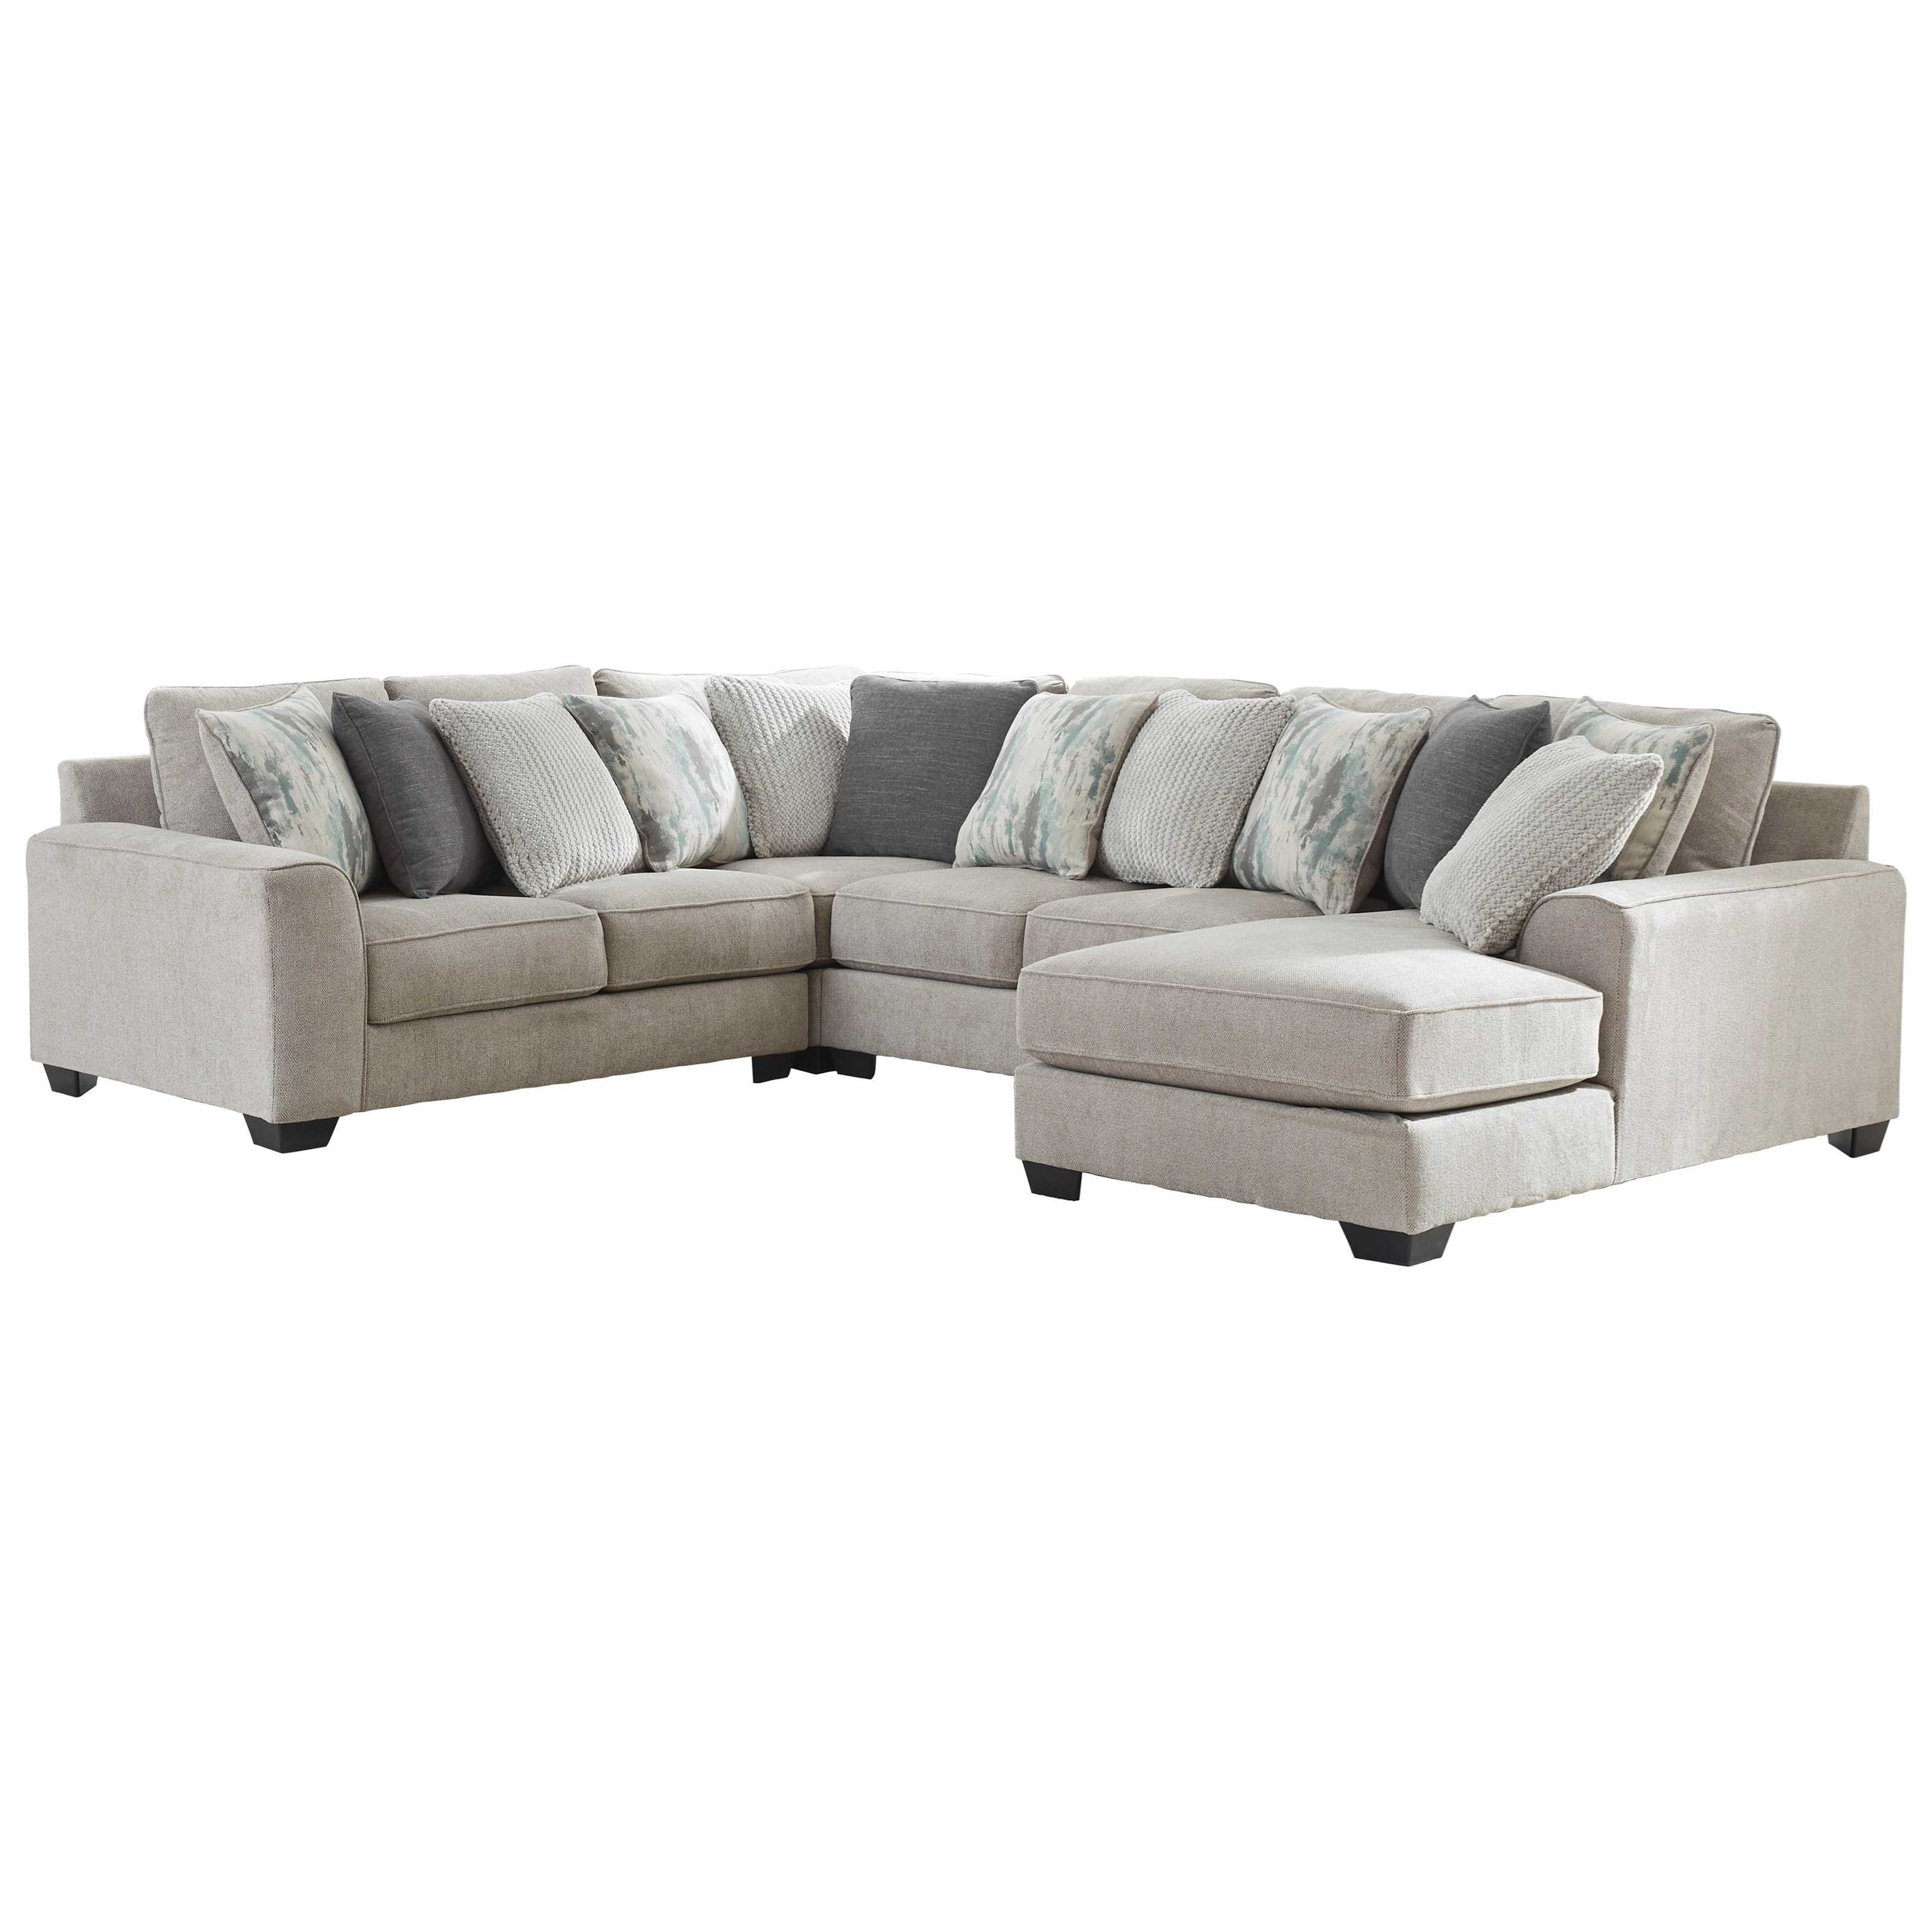 Ardsley 4-Piece Sectional with Right Chaise by Benchcraft at Furniture Fair - North Carolina